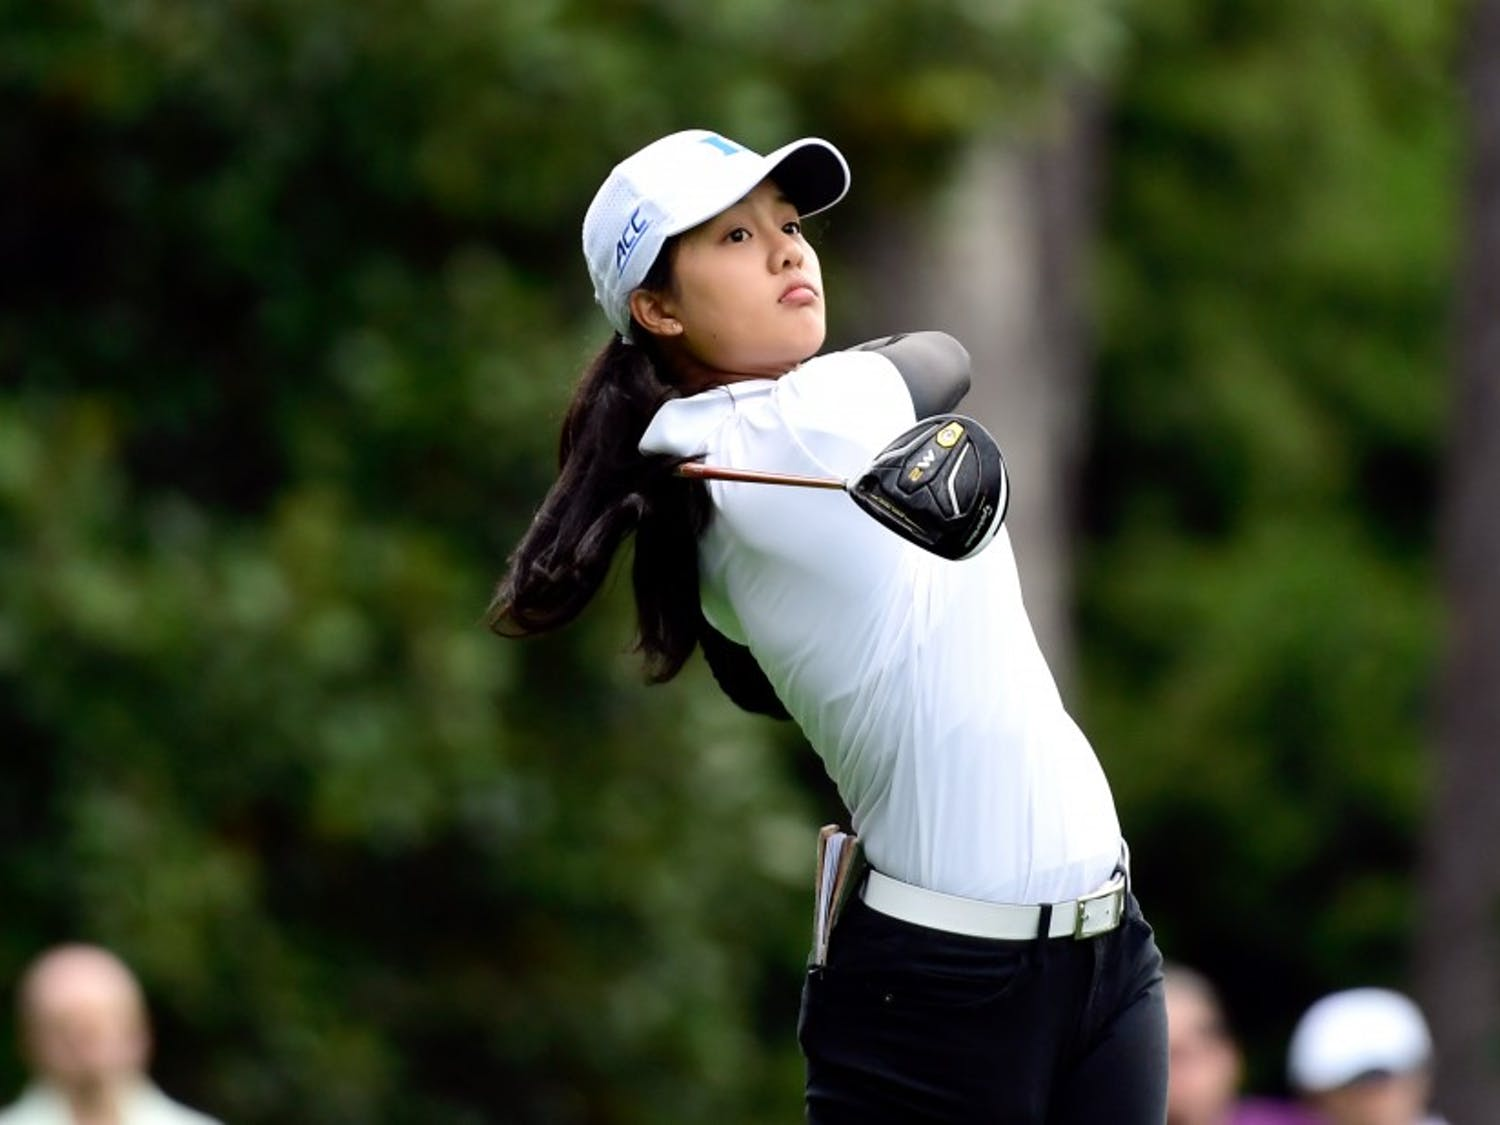 Jaravee Boonchant of Thailand hits her tee shot on hole No. 2 during the final round of the Augusta National Women's Amateur, Saturday, April 6, 2019.